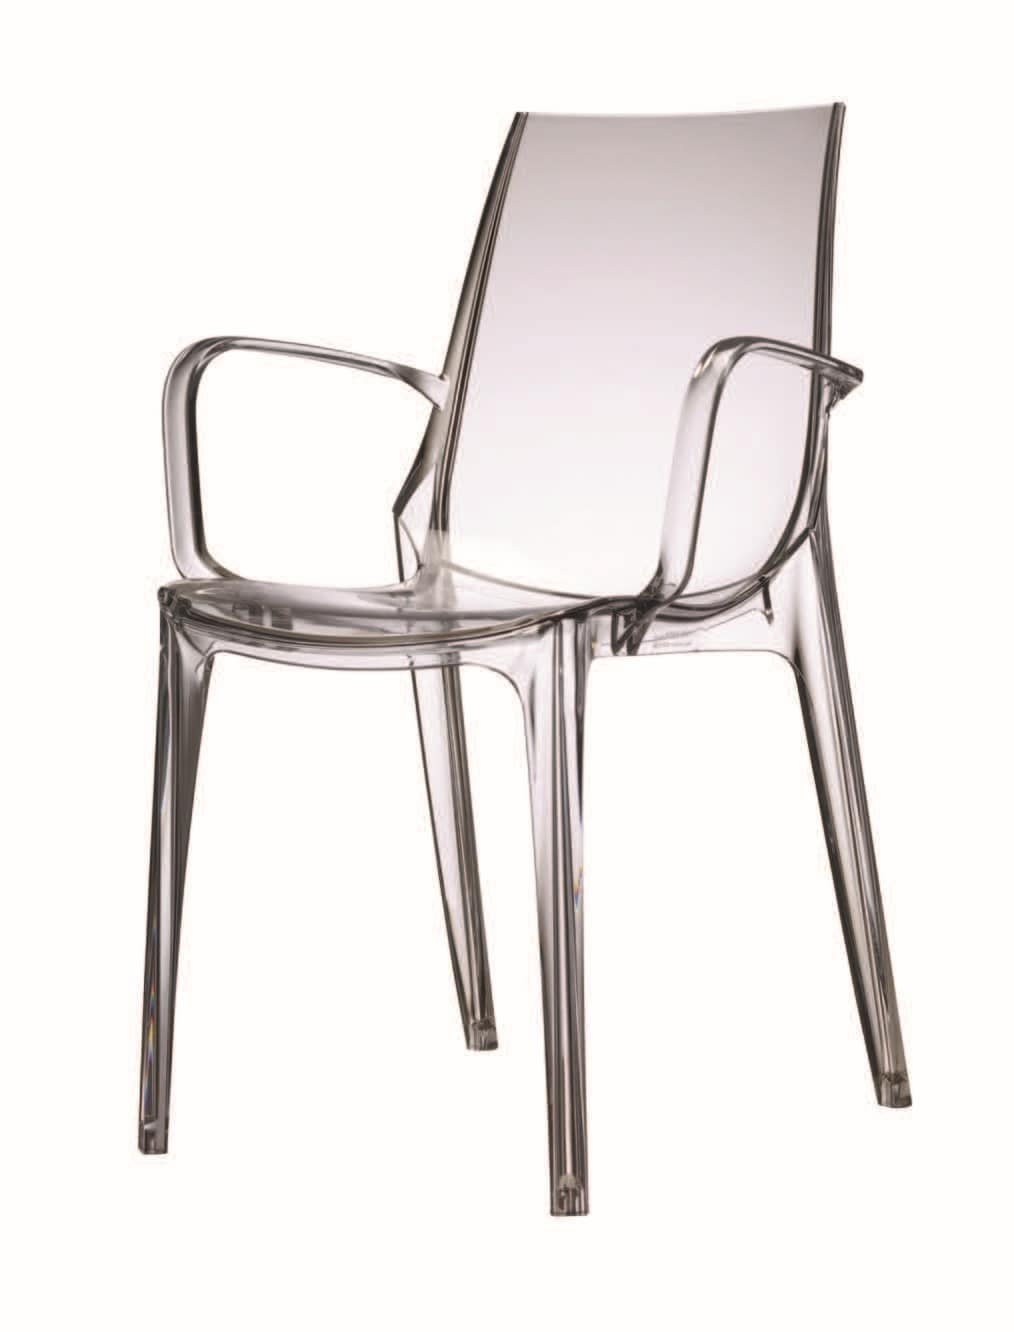 SE 2652, Chair made of polycarbonate, with non-slip feet